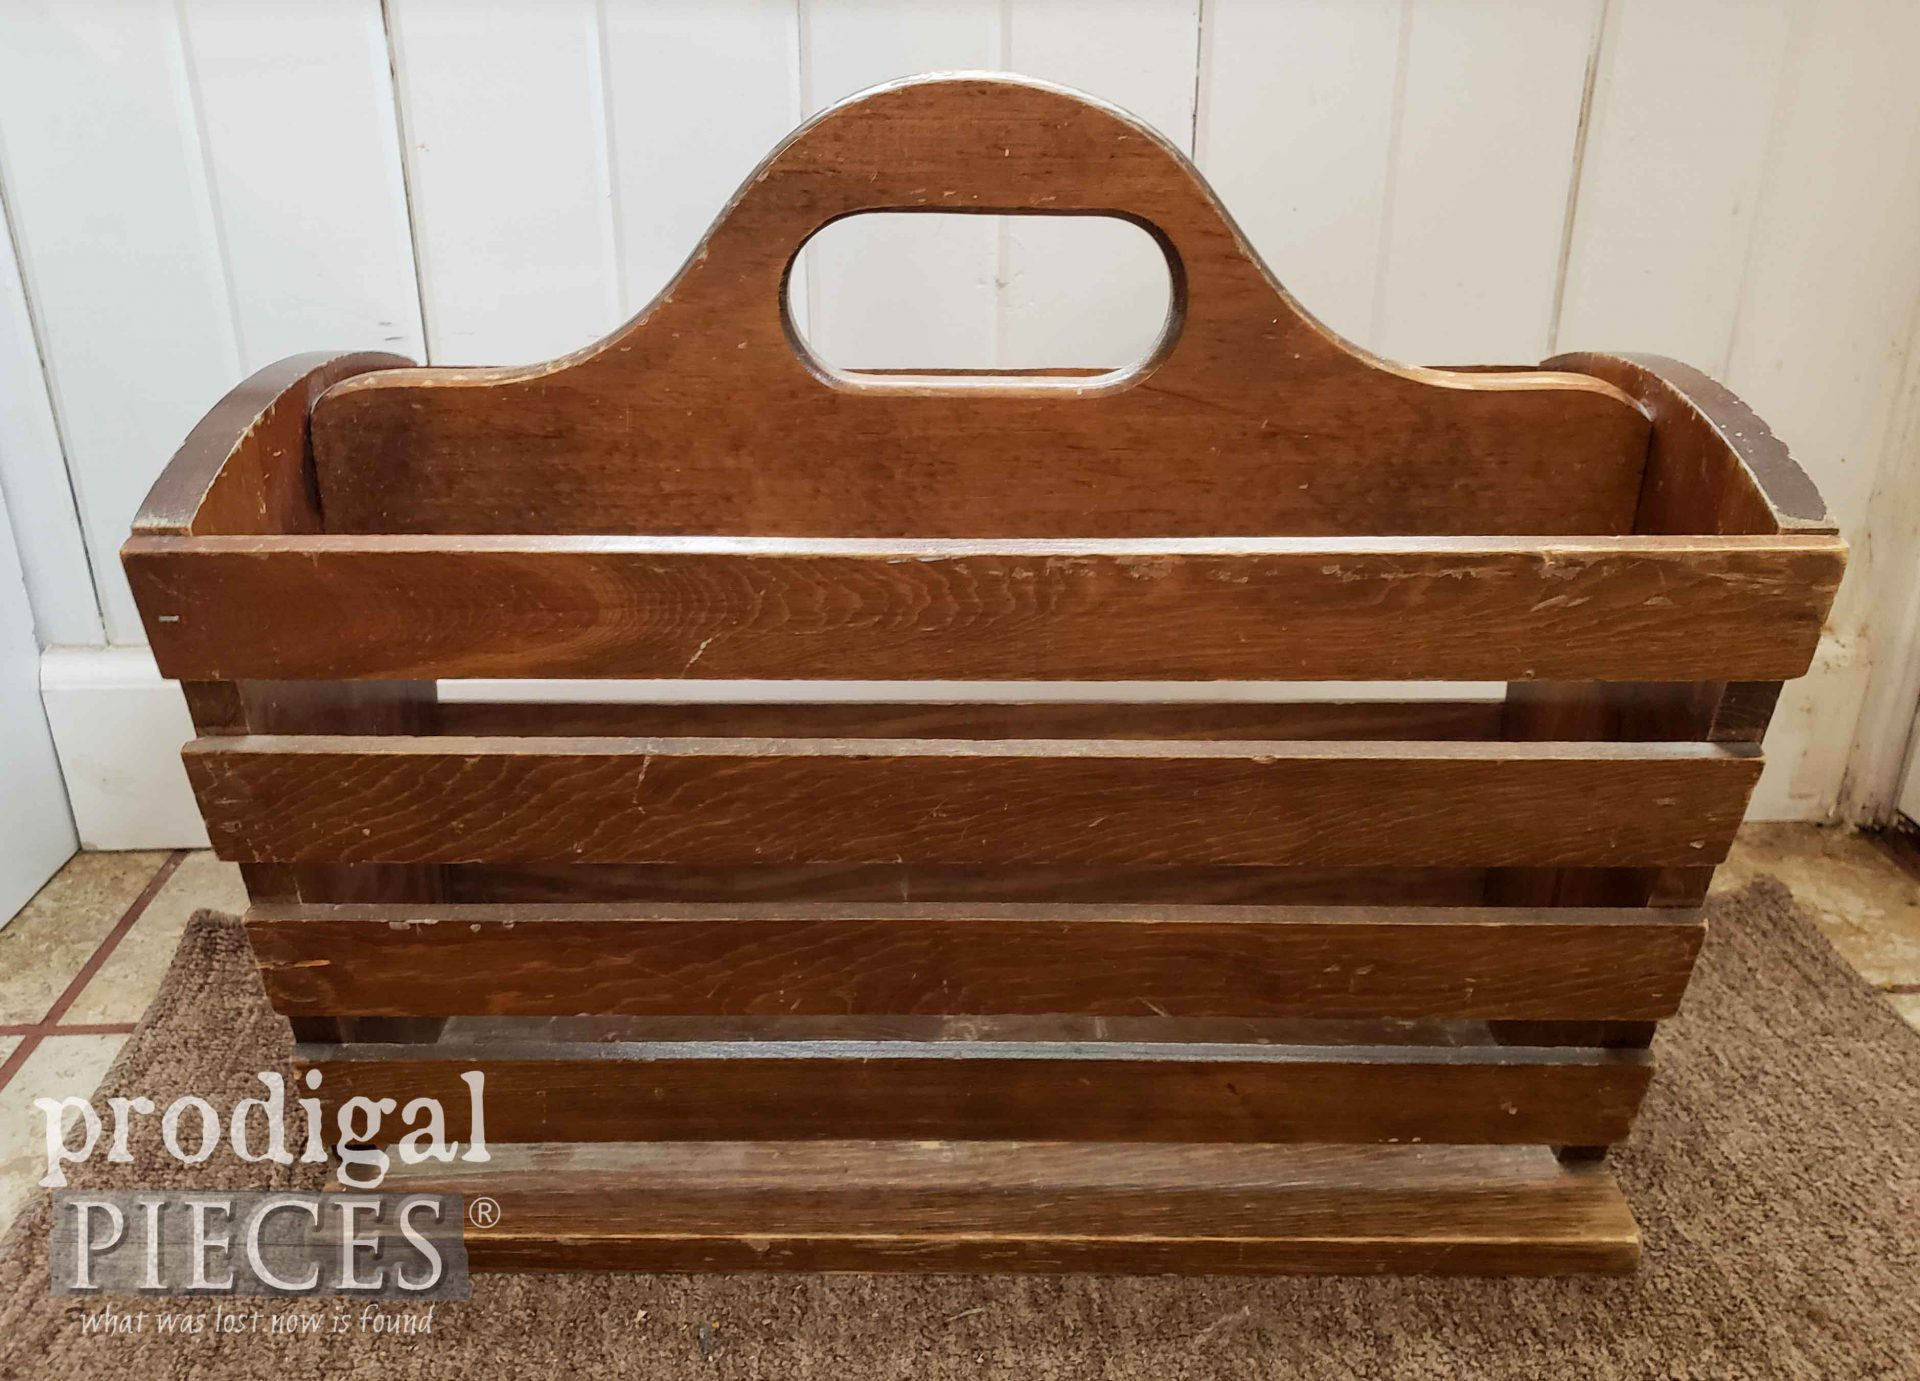 Vintage Magazine Rack Before Repurpose by Larissa of Prodigal Pieces | prodigalpieces.com